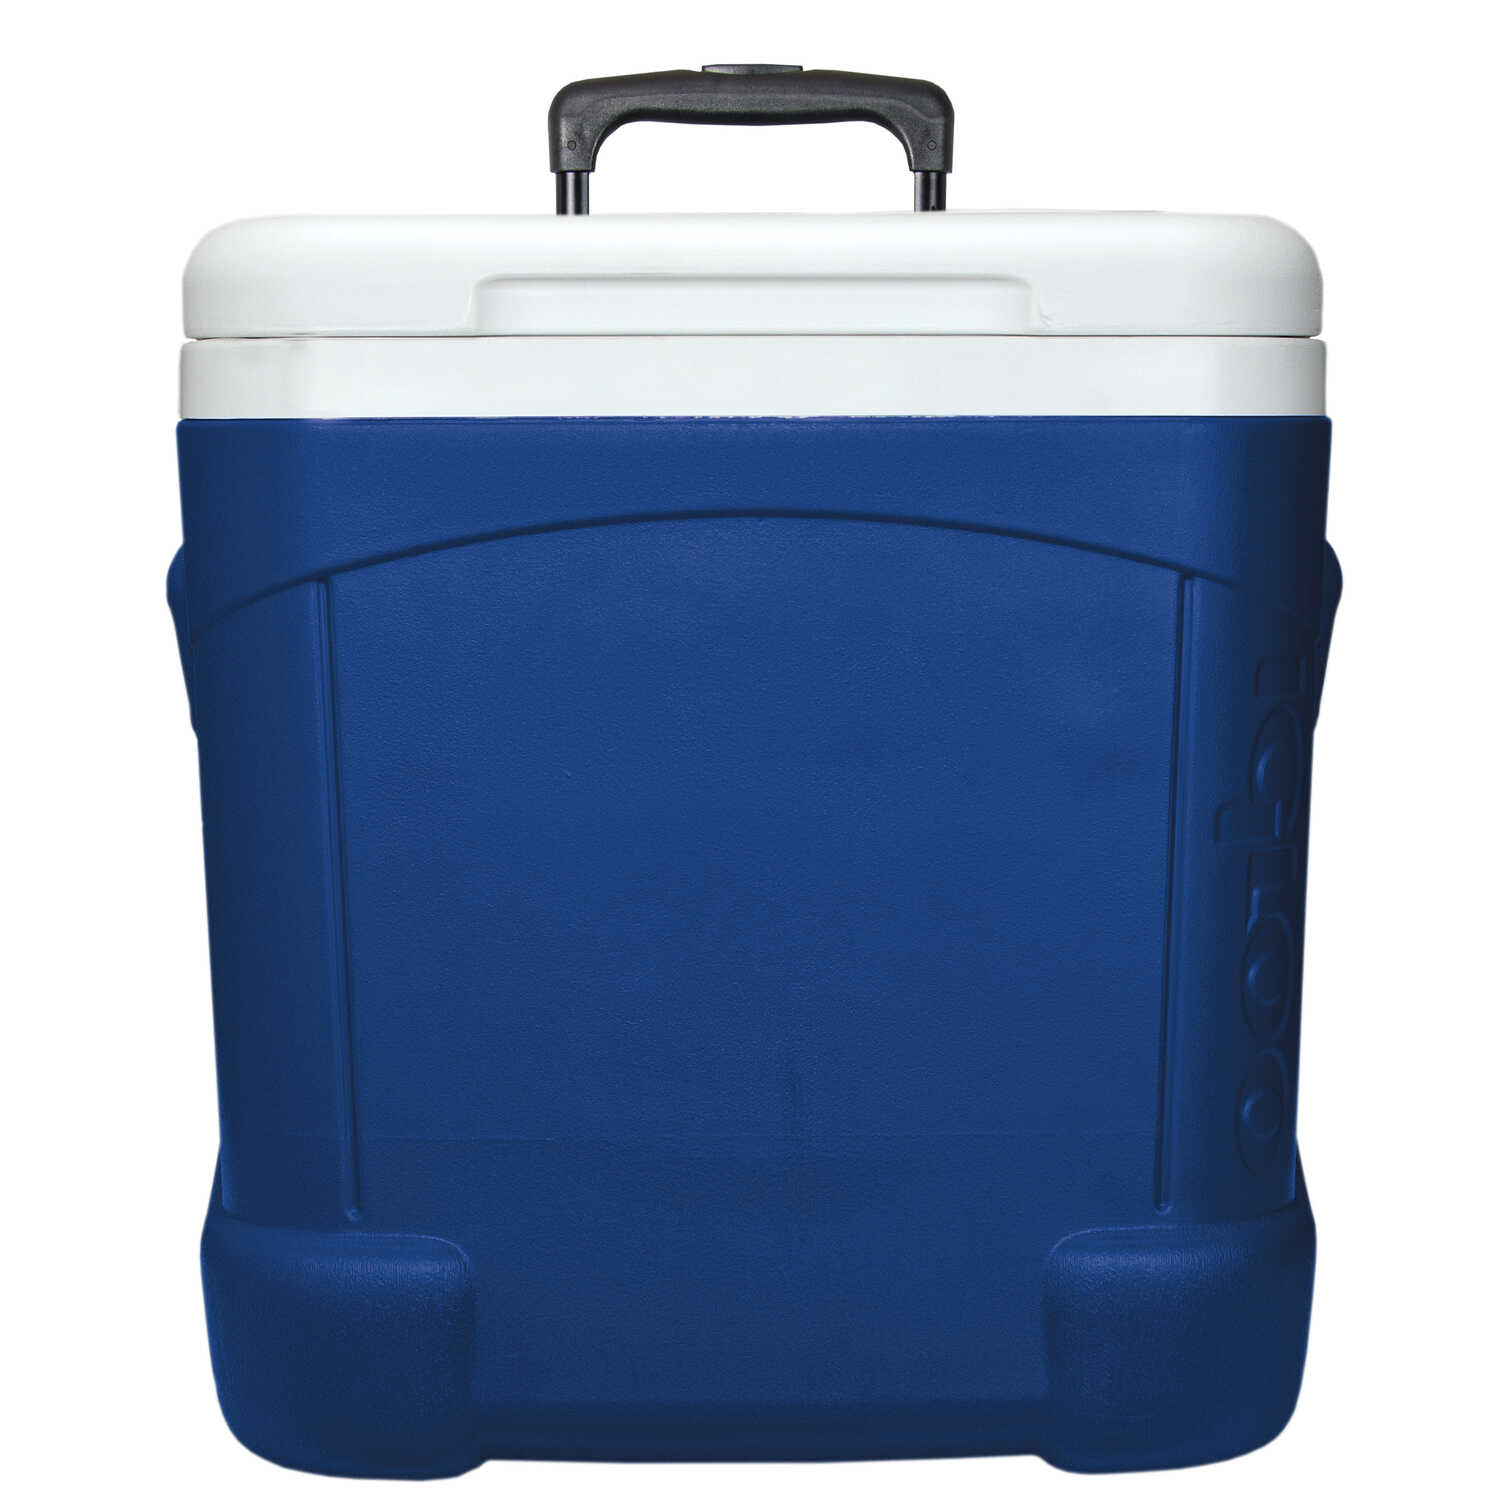 igloo ice cube roller cooler 60 qt. blue - ace hardware